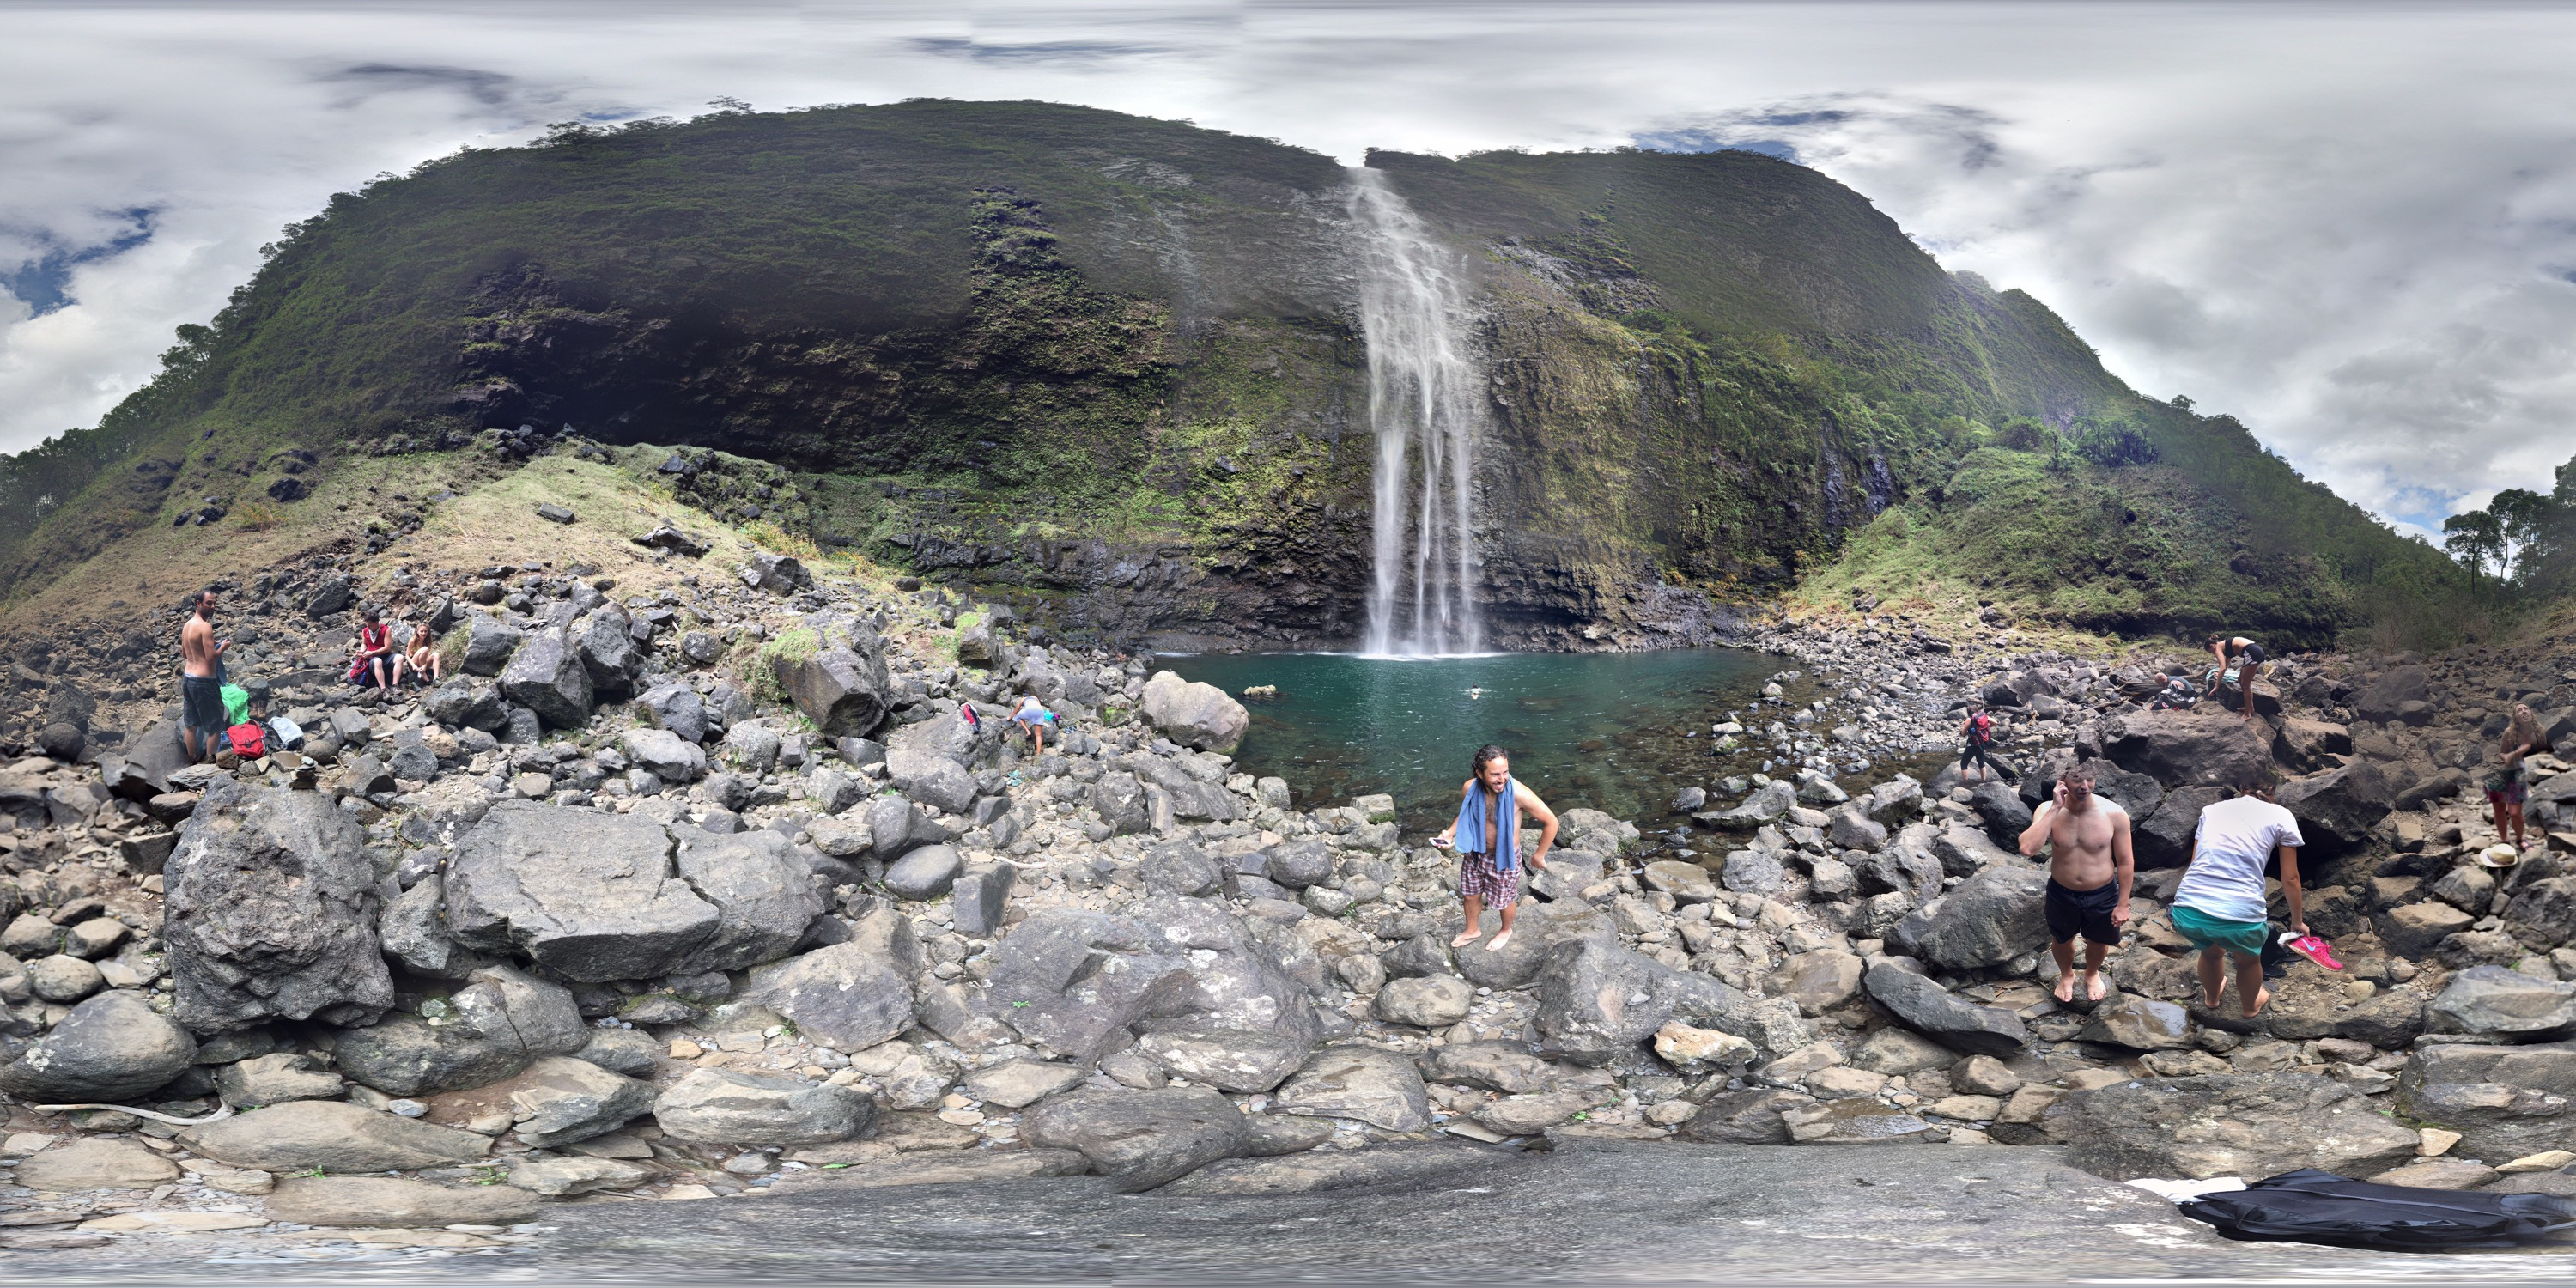 A 360 degree panarama showing the falls, people in bathing suits, and lots of rocks.